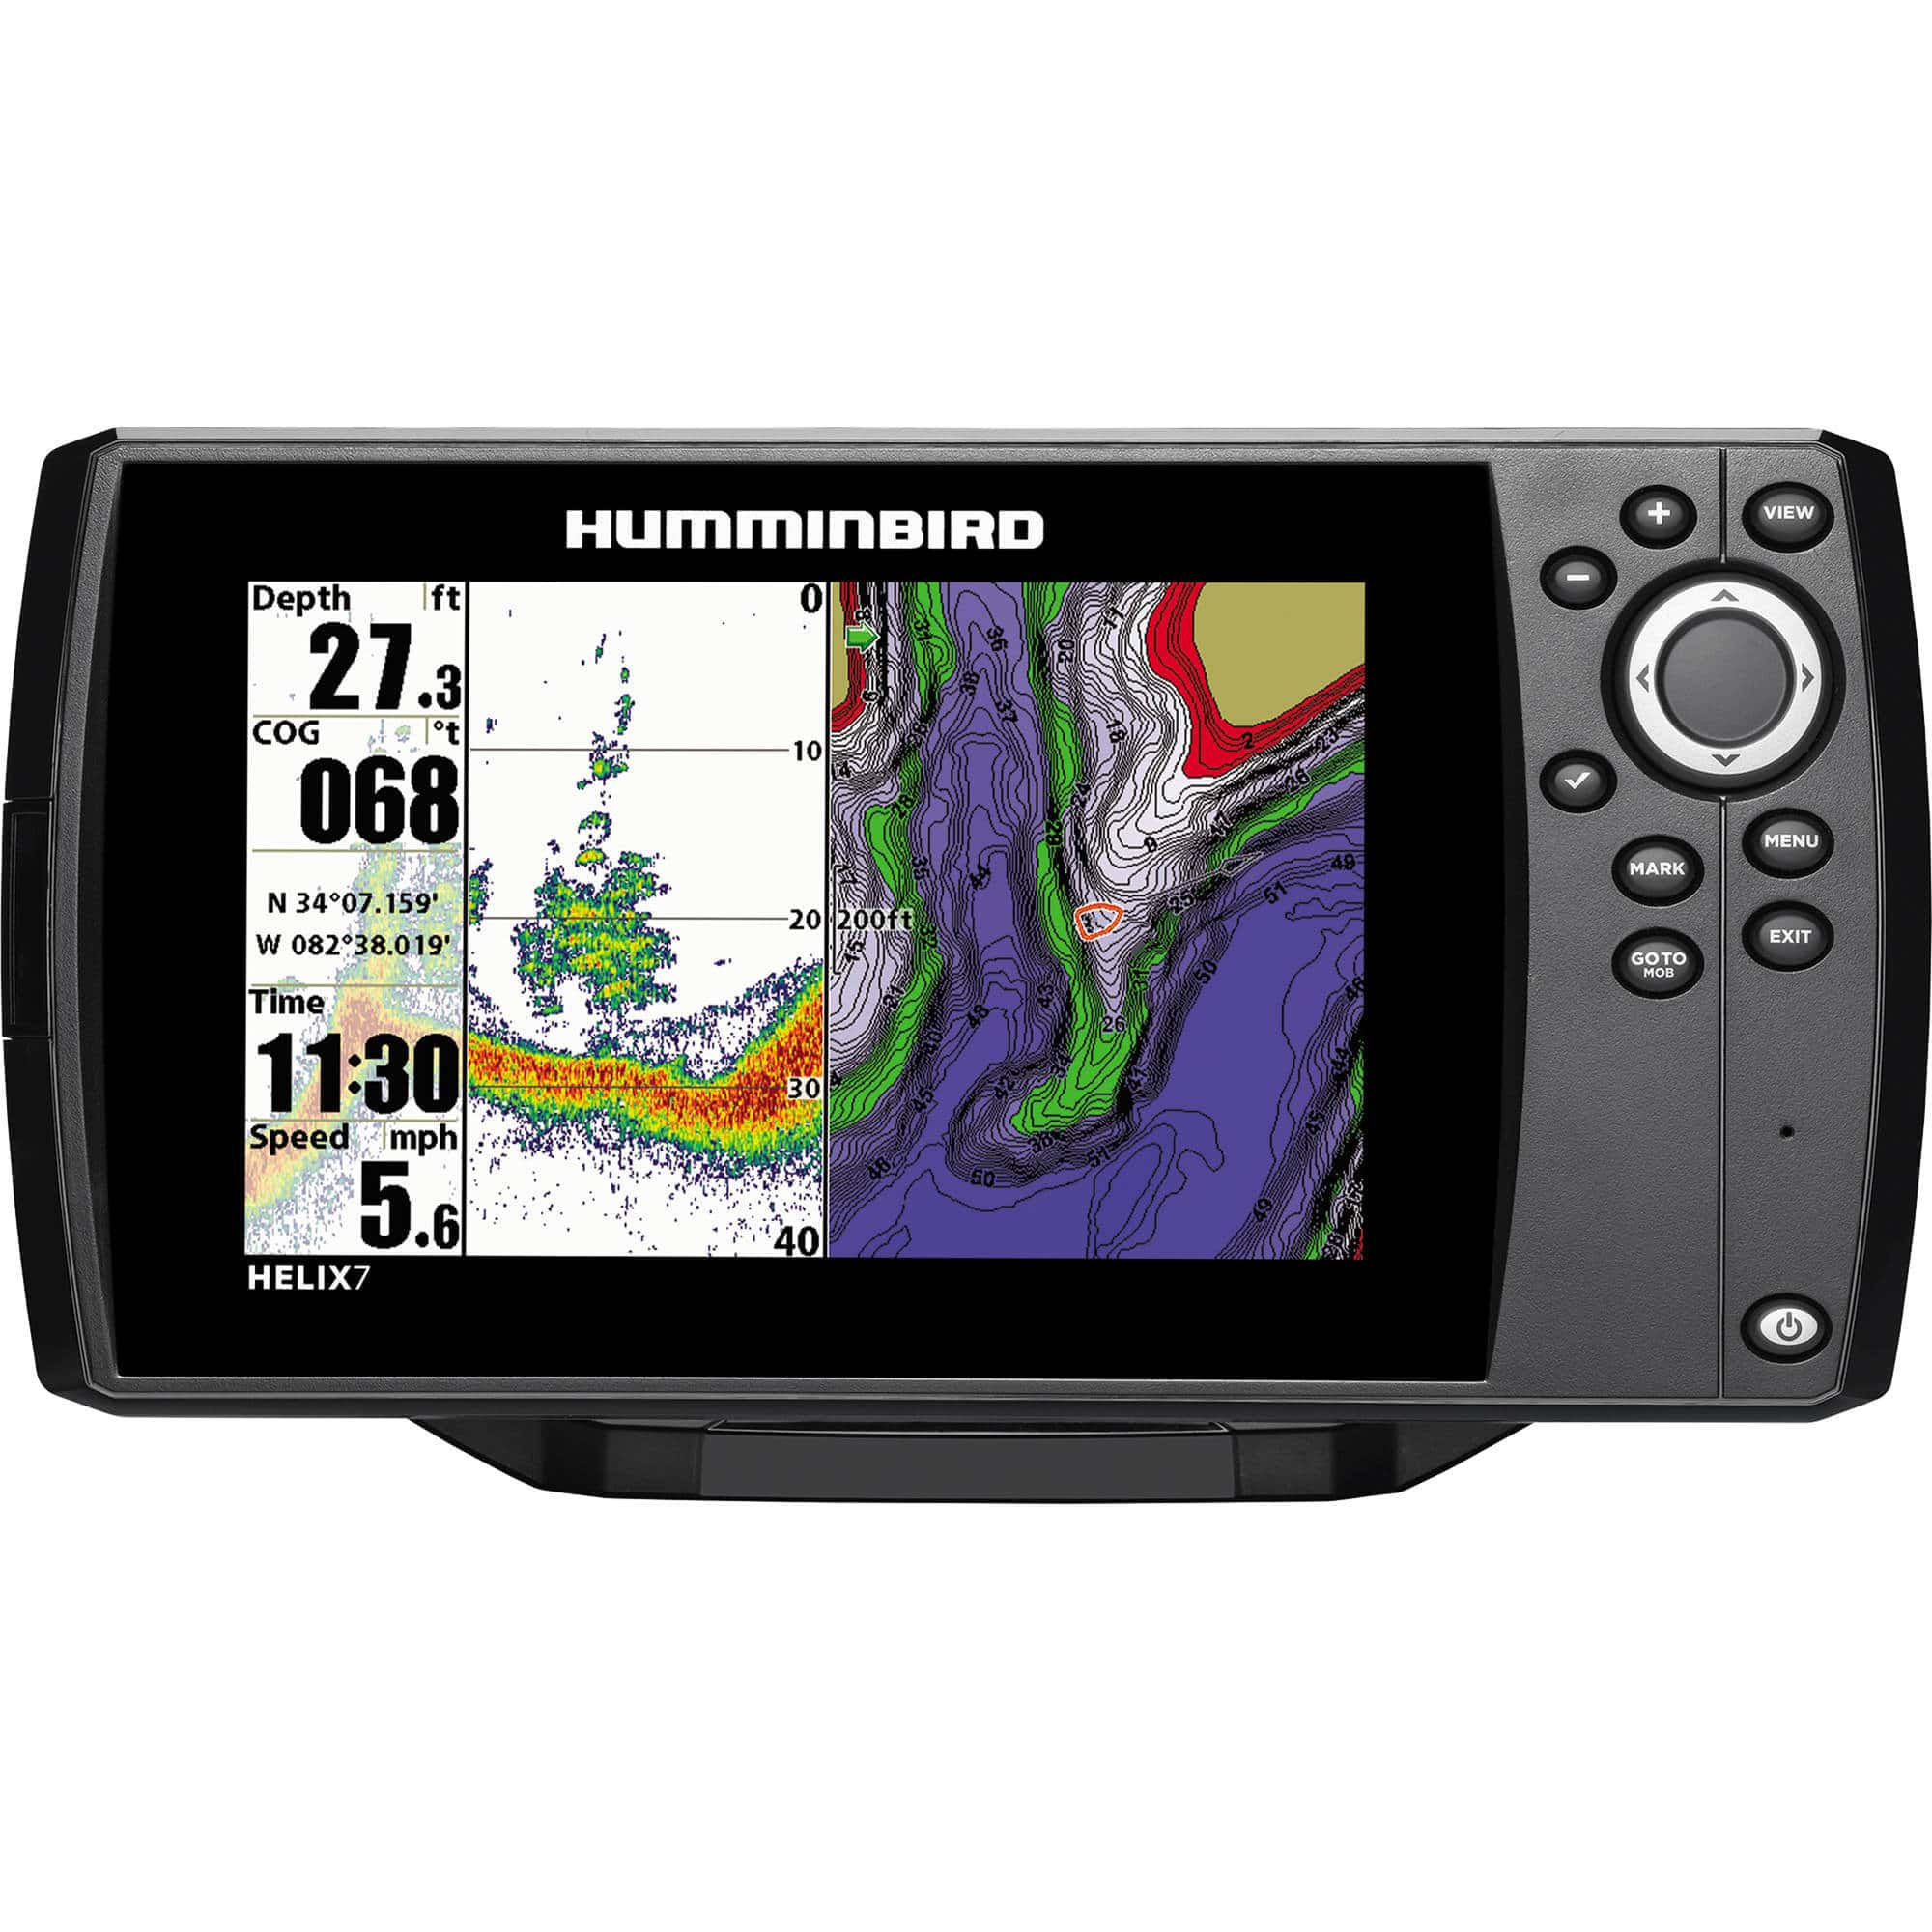 HumminBird Helix 7 Review (Looking at Chirp DI G2 & Chirp SI/GPS)